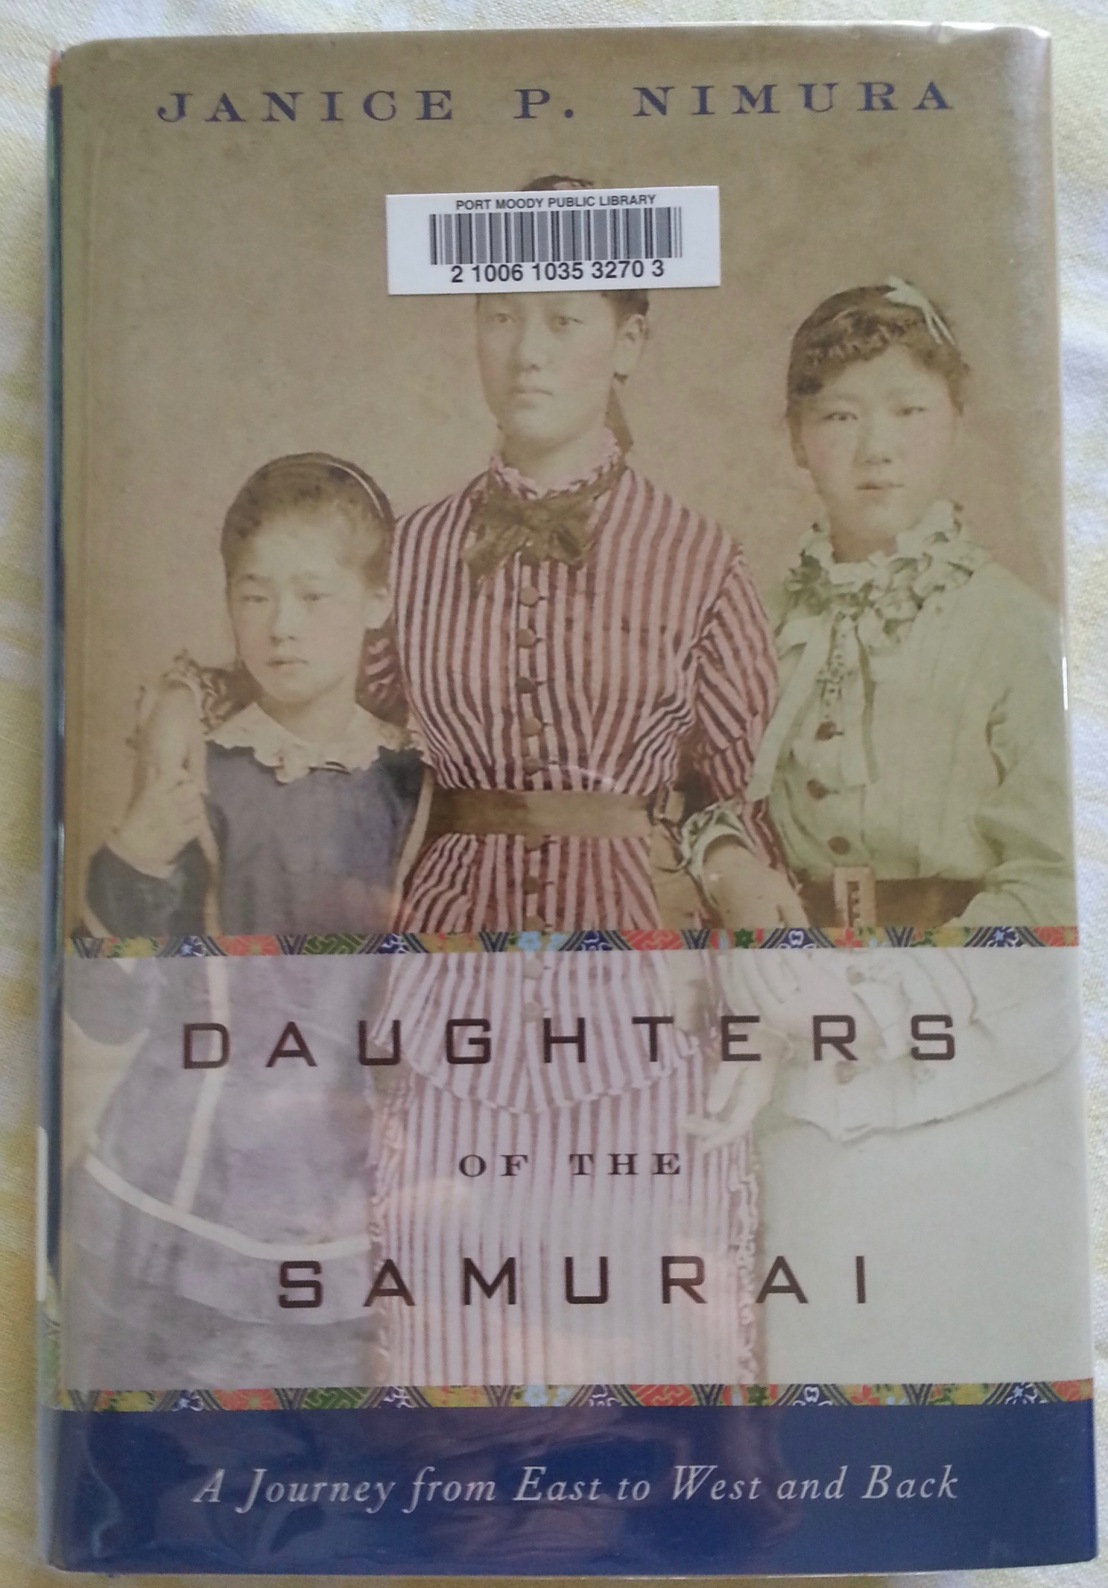 Janice P. Nimura's — Daughters of the Samurai *****